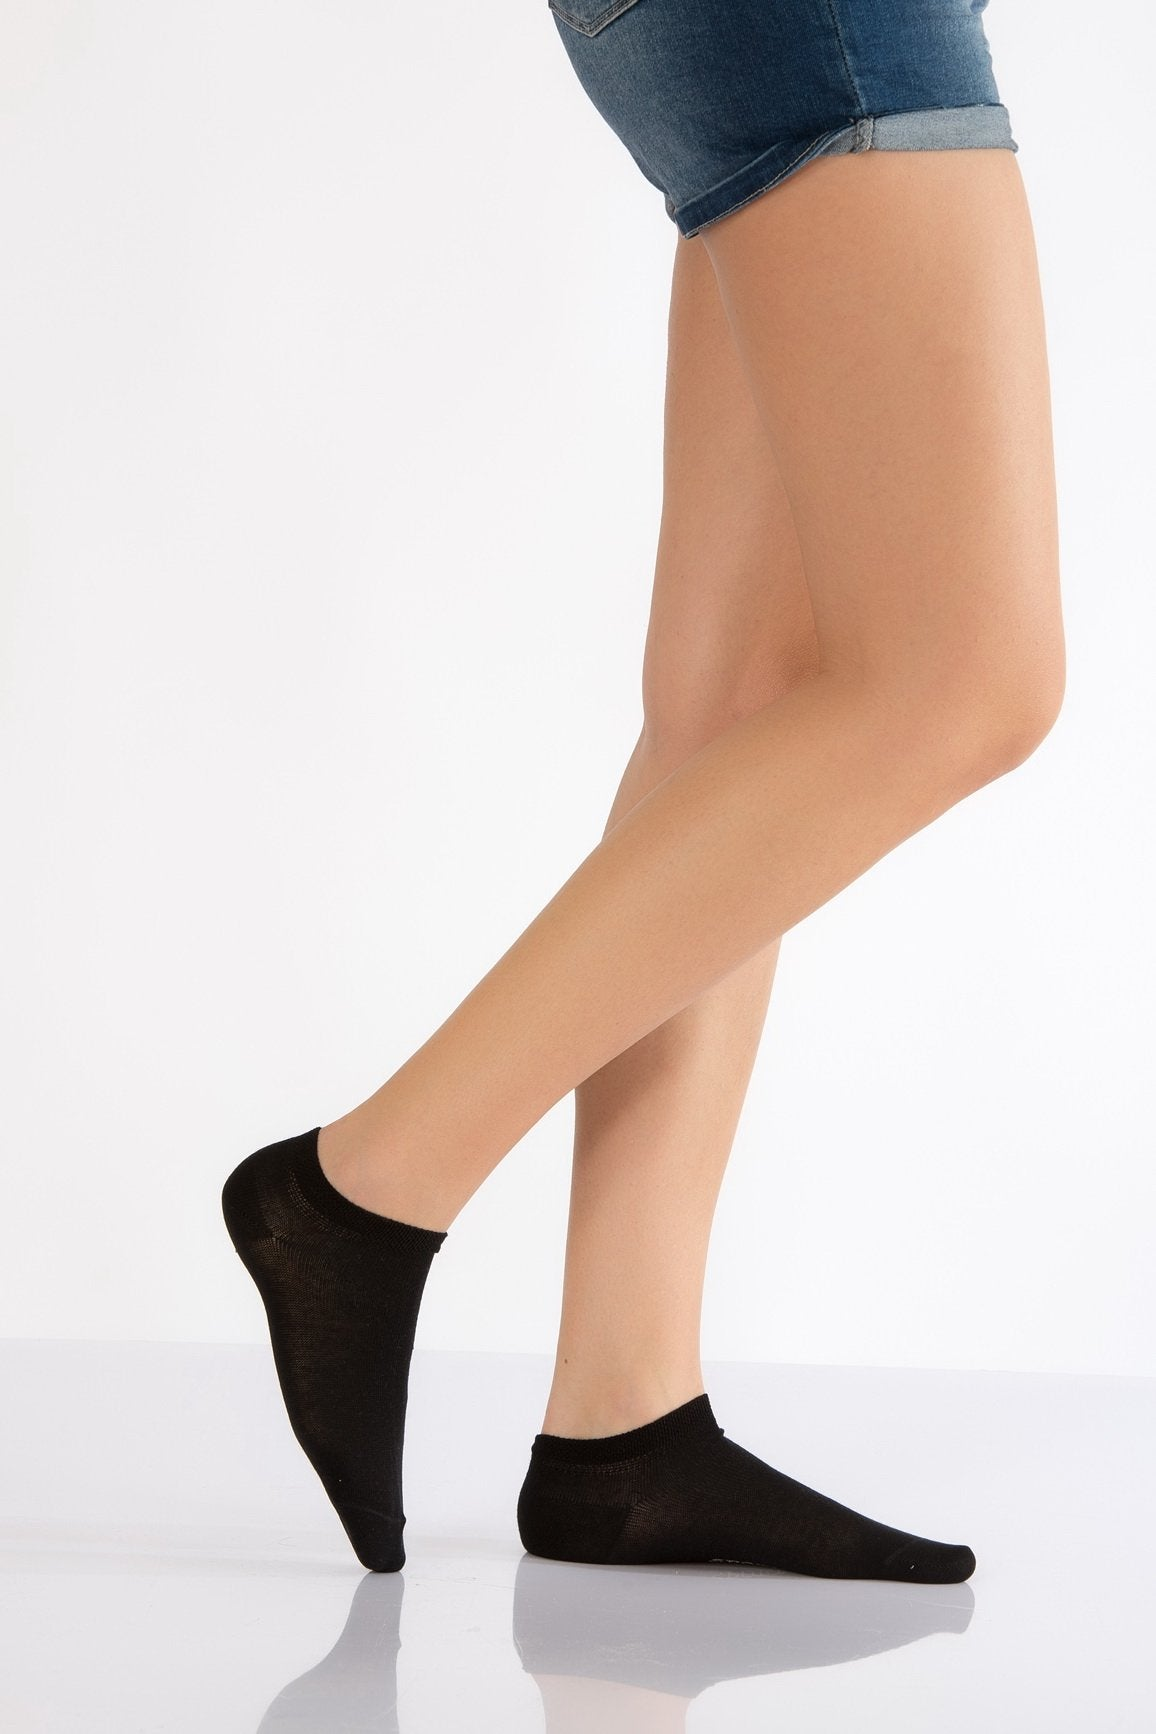 Women's Plain Black Booties Socks- 3 Pairs